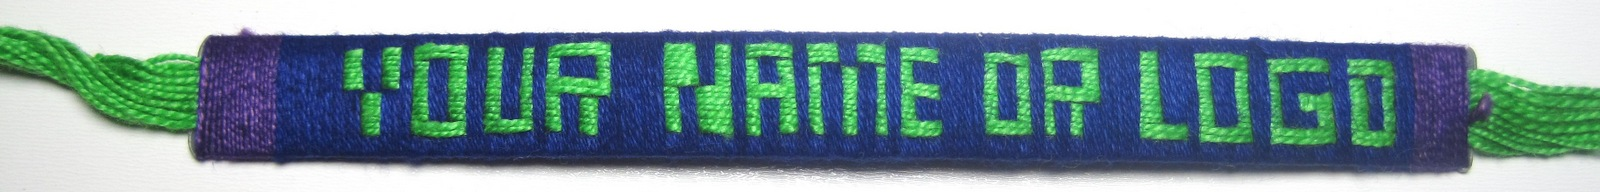 Custom Letters Cotton Friendship Bracelet With Internal Strip 1/2 Inch custom manufacturing